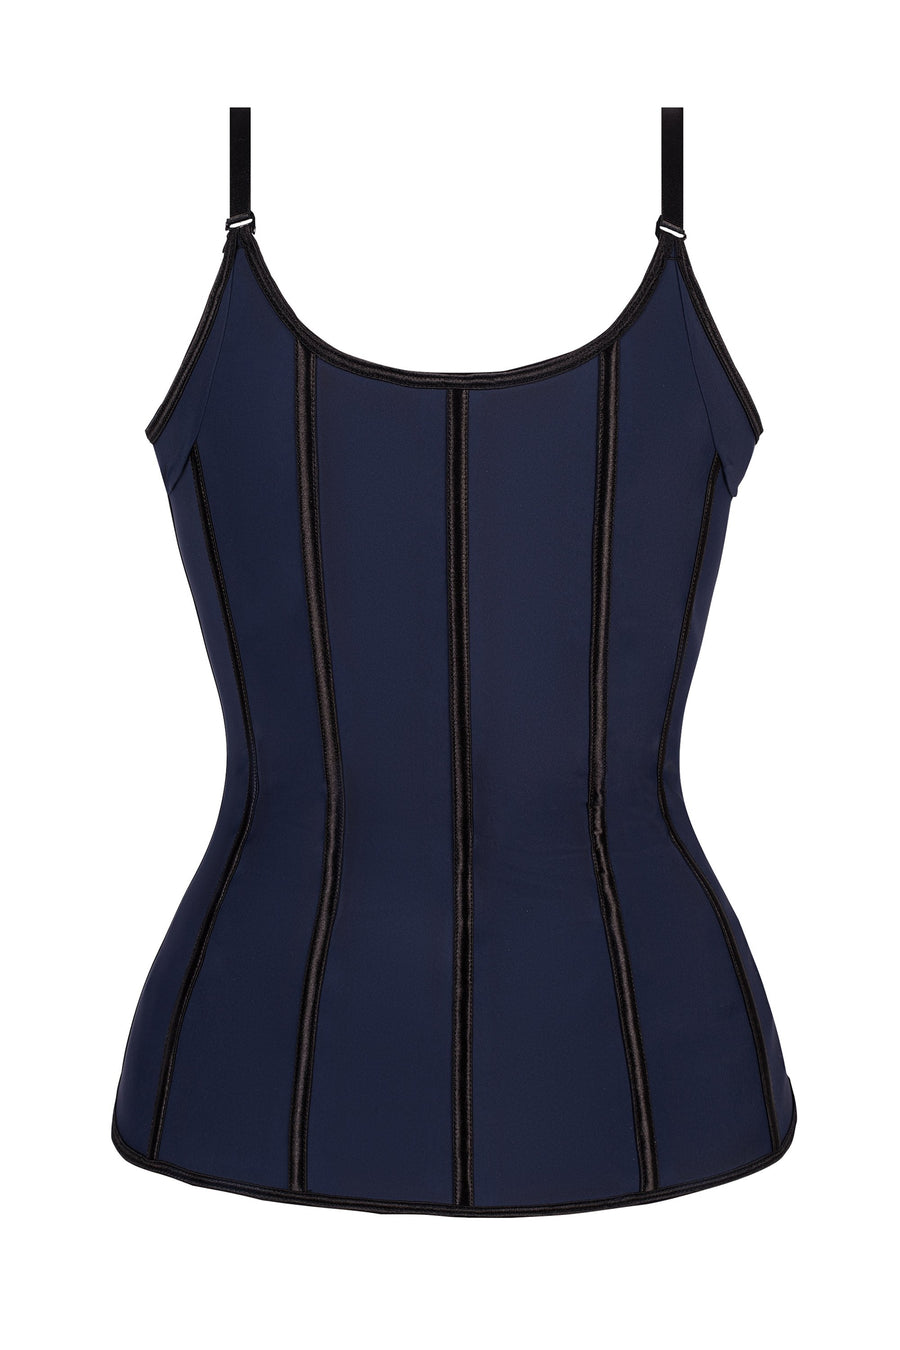 Corset Story Navy Latex Underbust Corset with adjustable Bra Straps